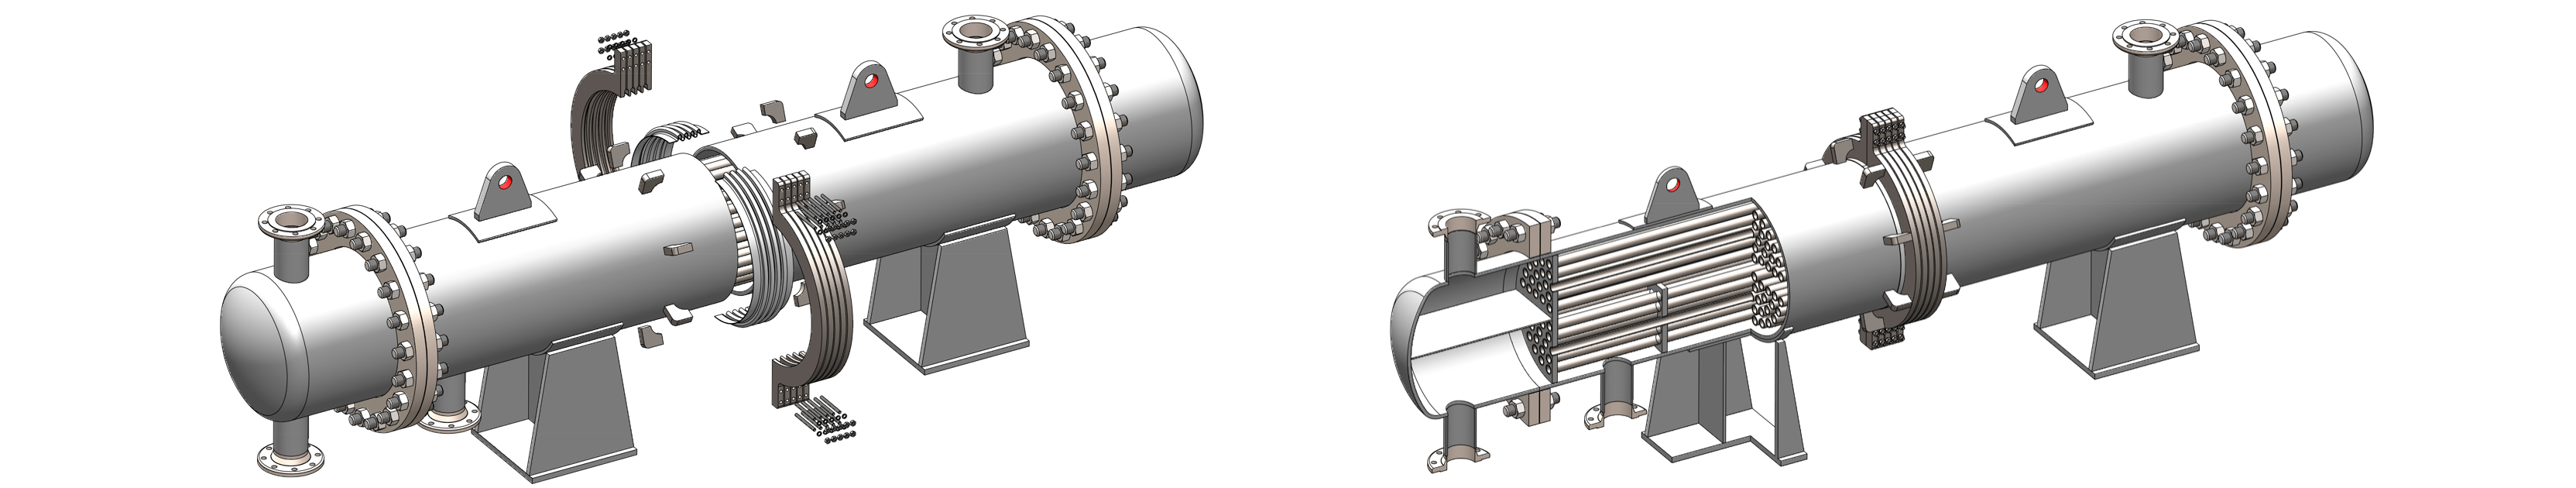 Metal expansion joint - Heat Exchanger